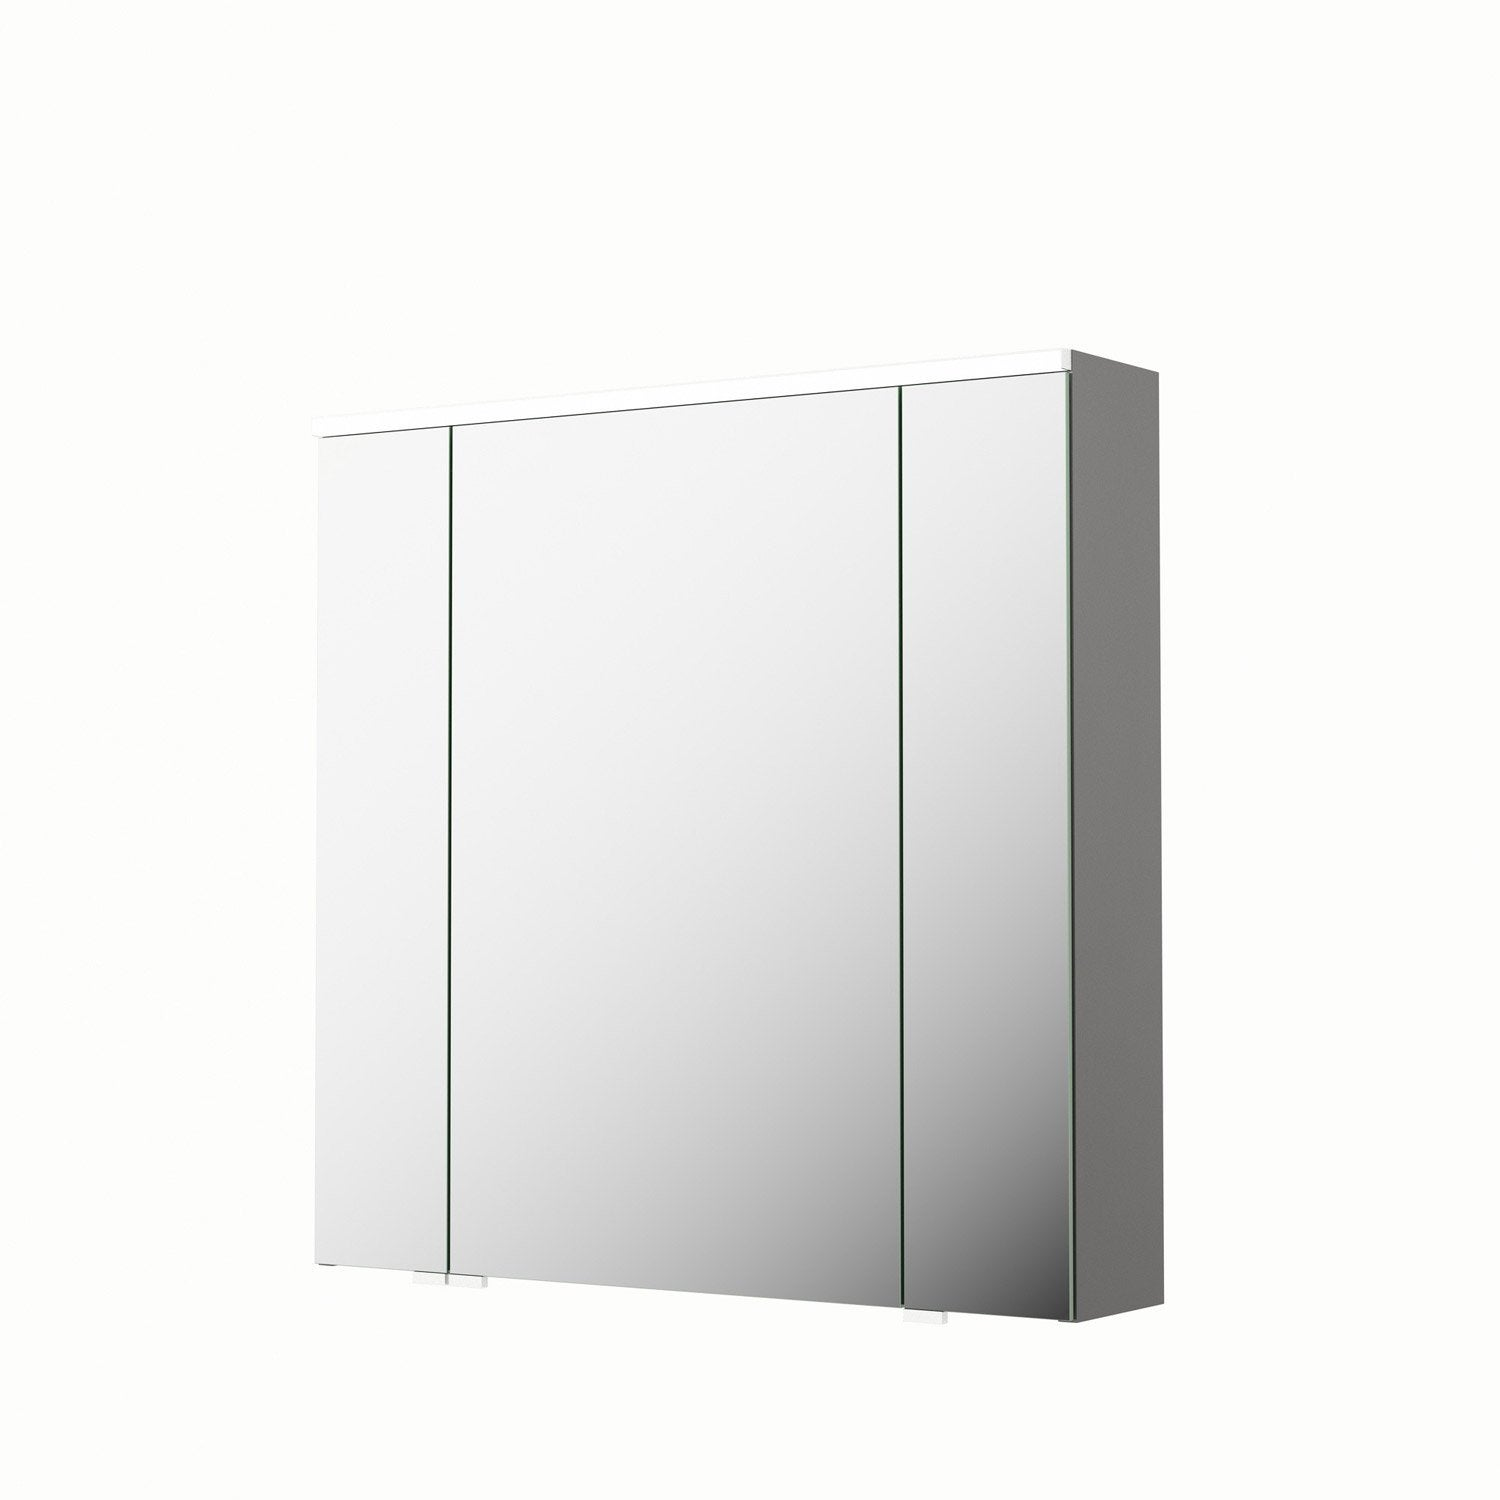 armoire de toilette lumineuse l 75 cm gris sensea neo. Black Bedroom Furniture Sets. Home Design Ideas